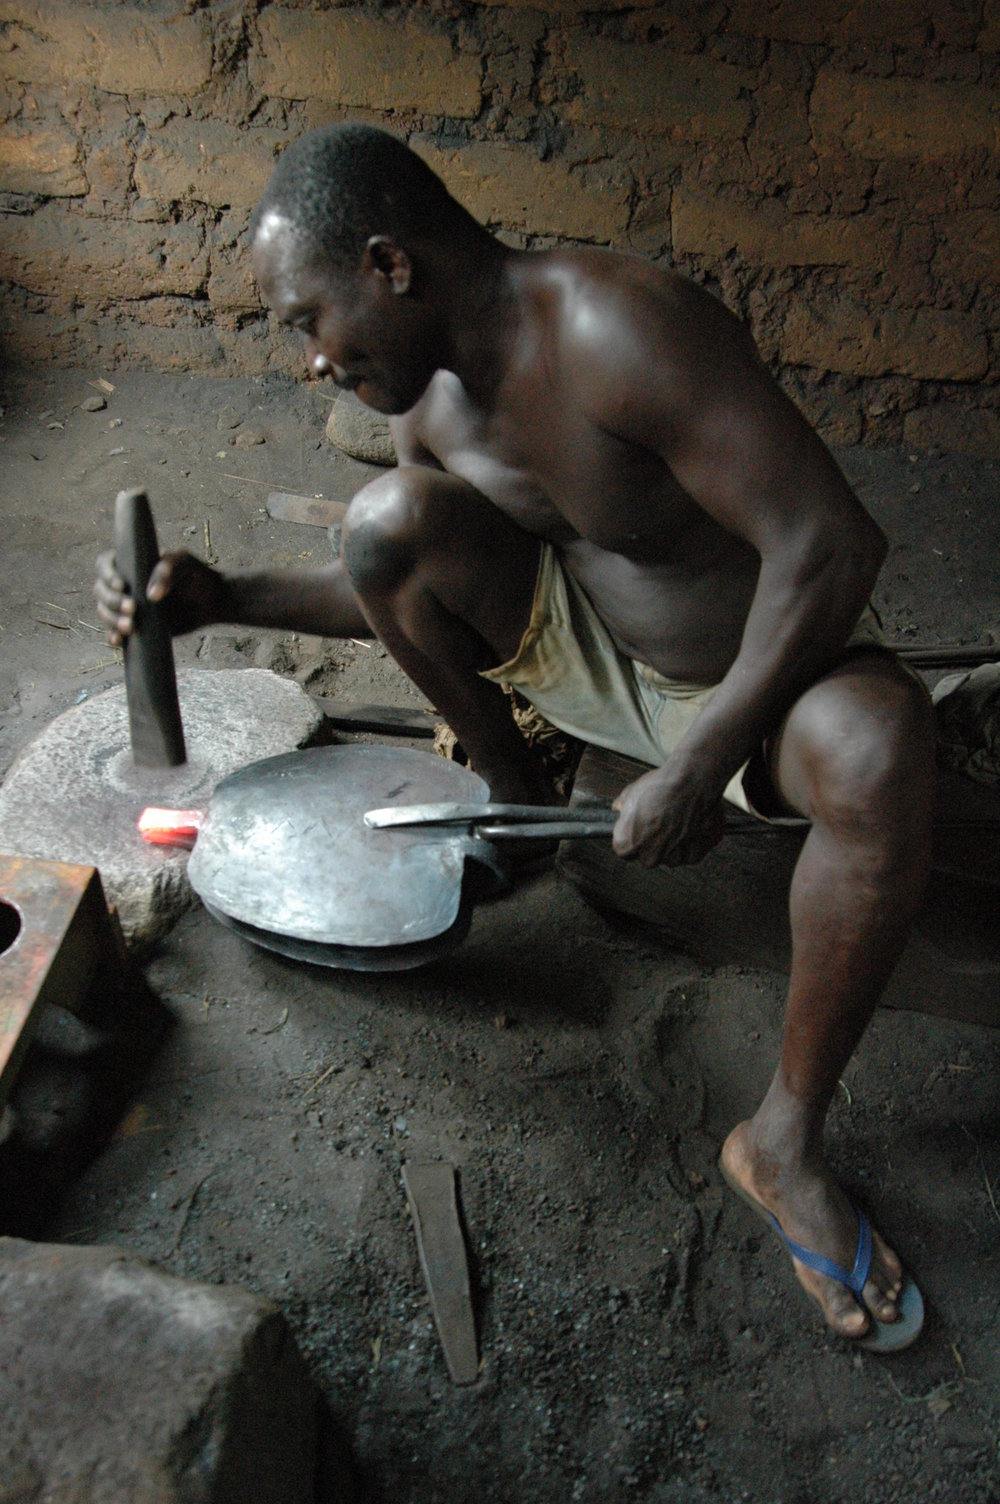 Kossi Kao making the final forge weld that completes the bivalve-shaped bell. Tchare, Togo. © Tom Joyce, 2010.